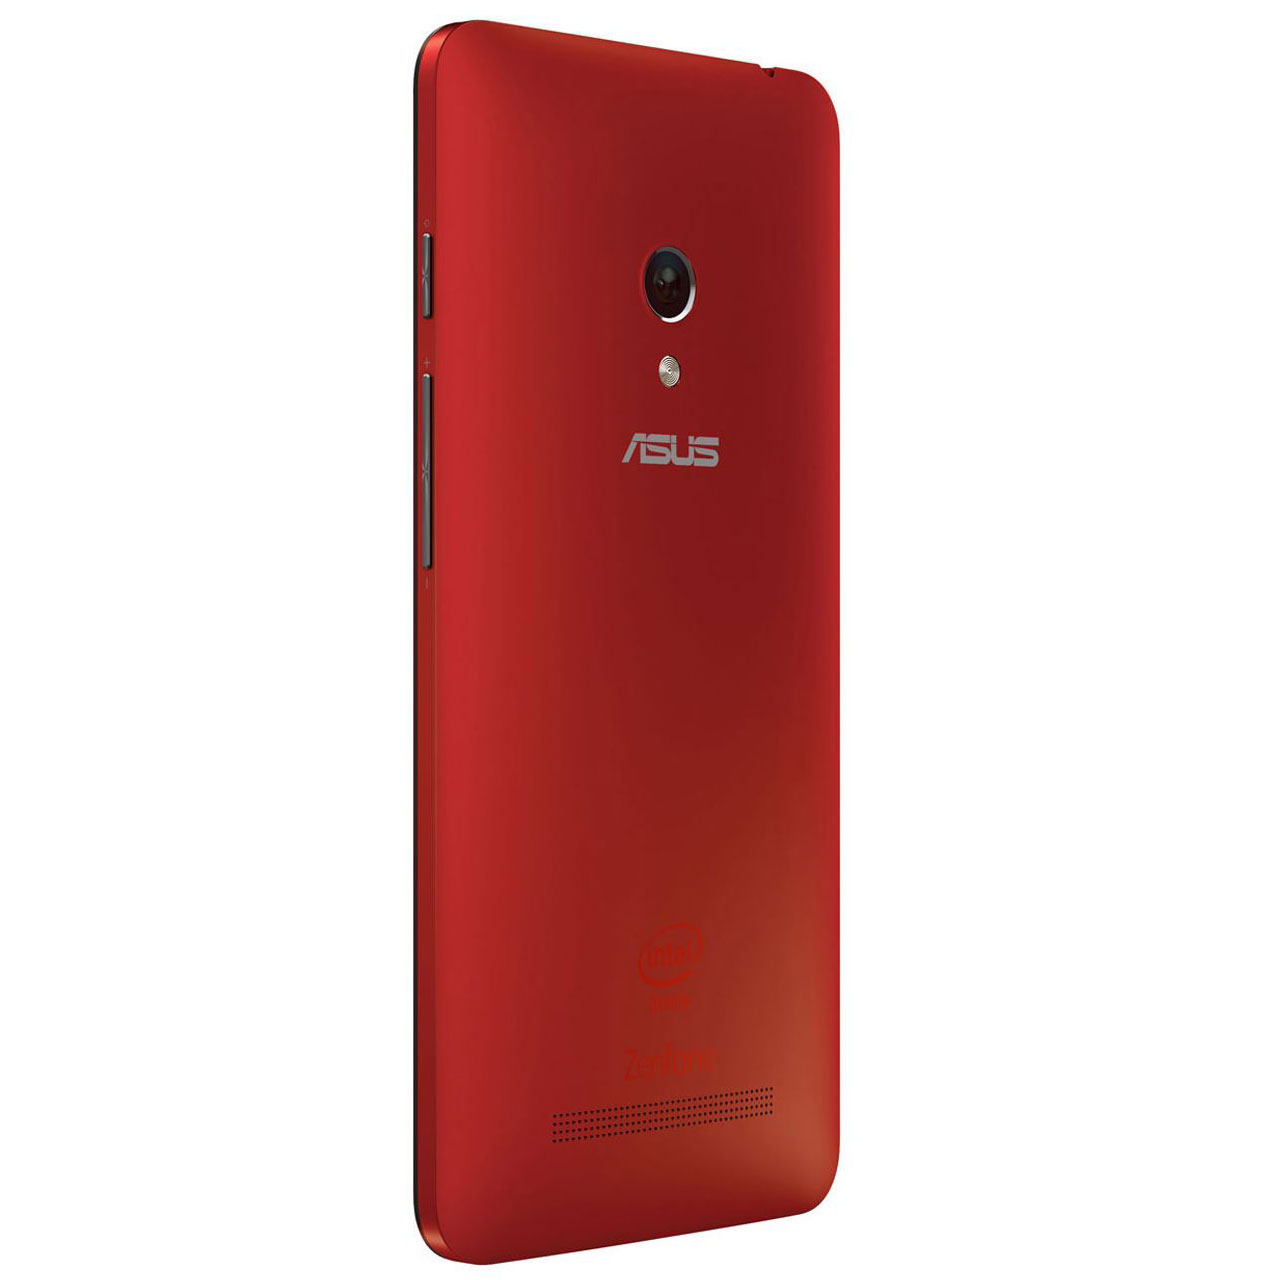 buy online f863a 3644e Details about Original Asus Zenfone 5 Case Back Cover Red Mobile Phone  Genuine Protector